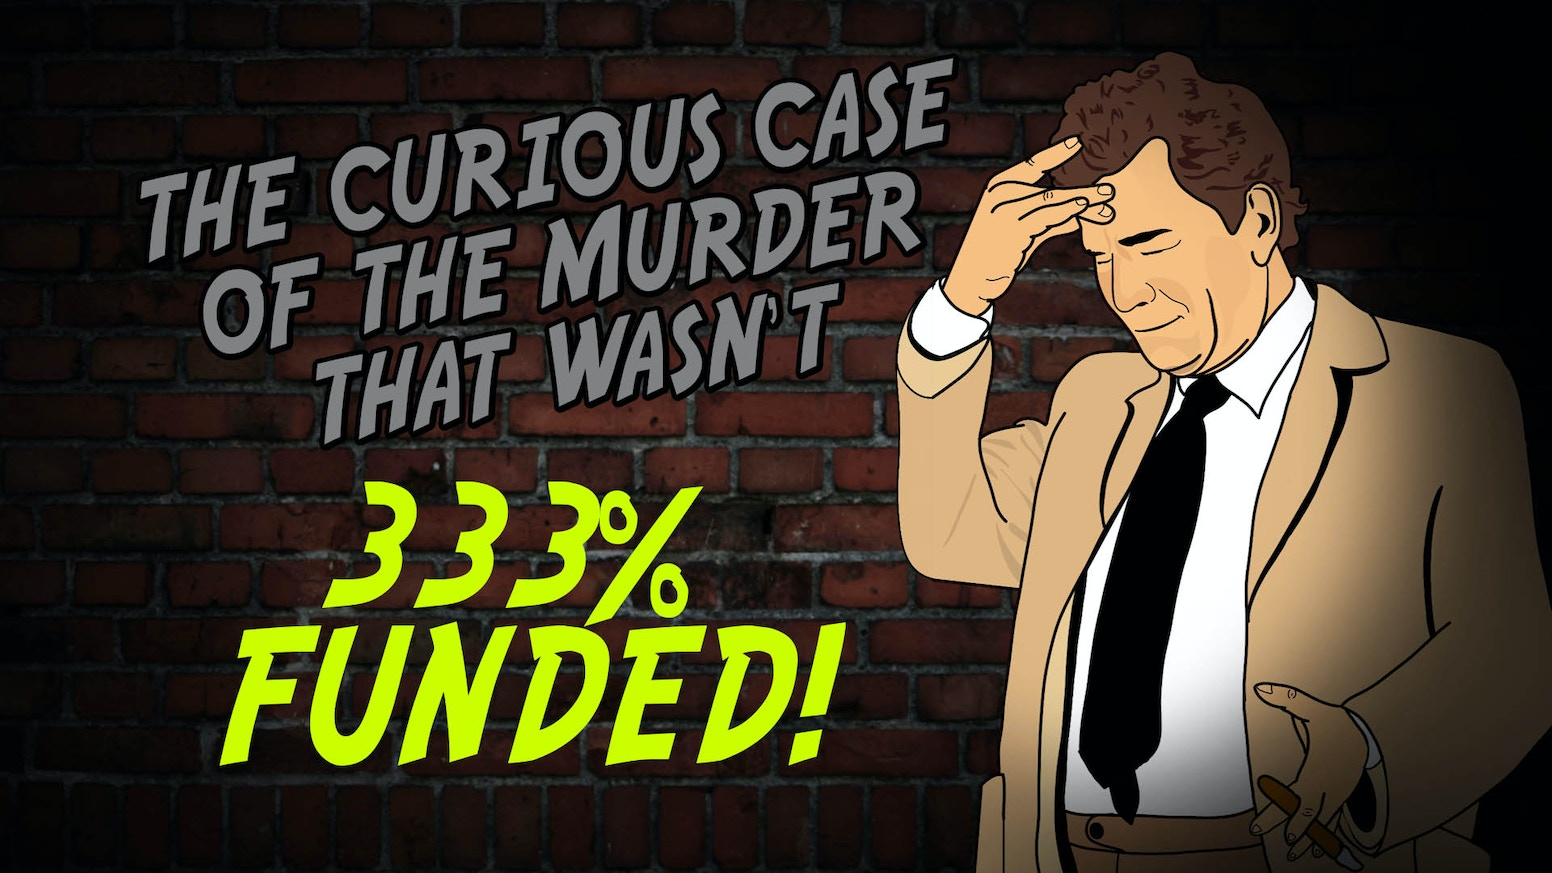 The game is afoot! What happens when iconic murder detectives try and solve the same case under one roof? Murder, mayhem and comedy!